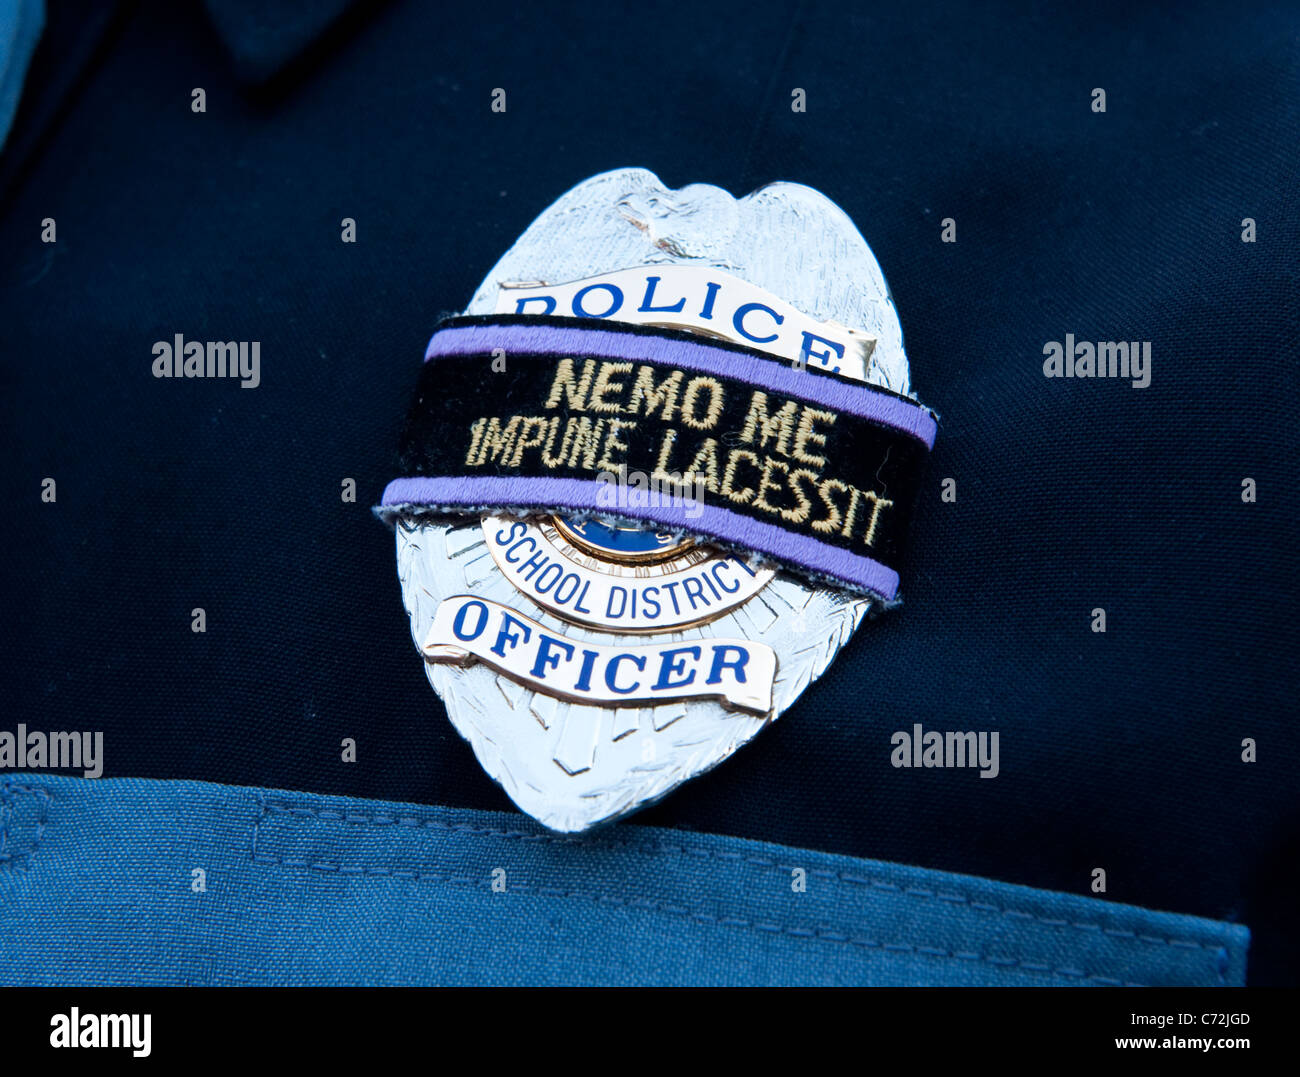 police officer badge with a banner that reads